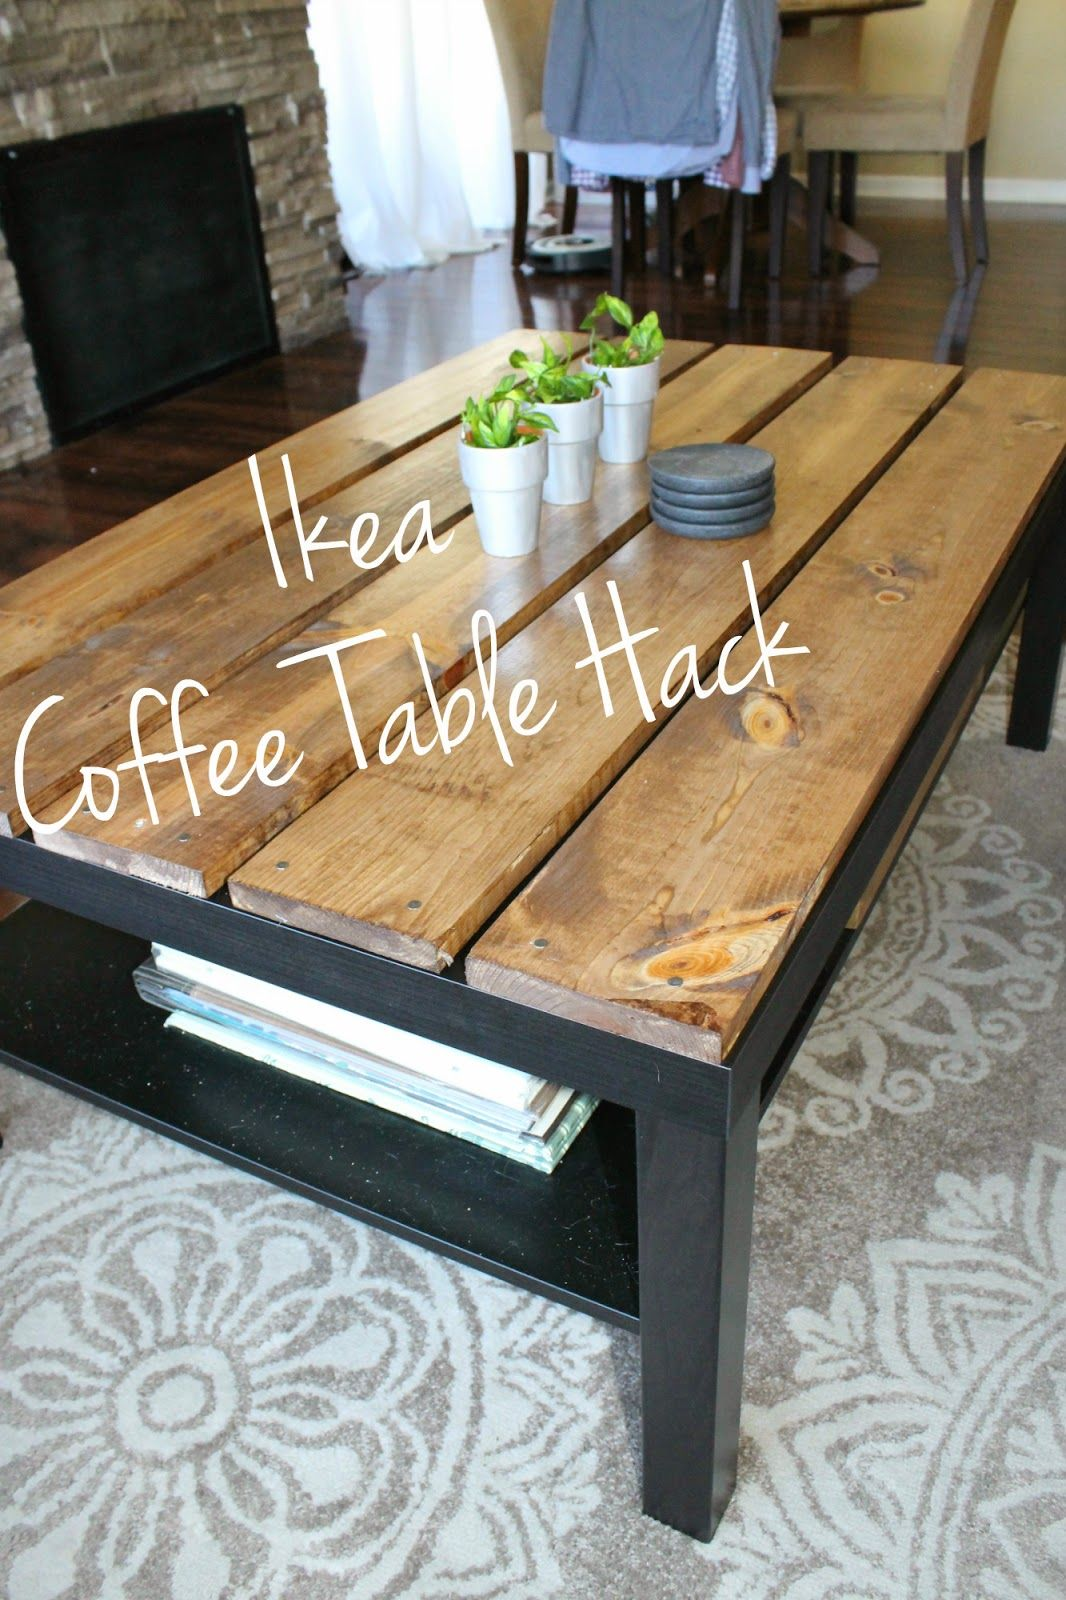 The Weekender Wife Ikea Coffee Table Hack Ikea Couchtisch Couchtisch Kaufen Dekor